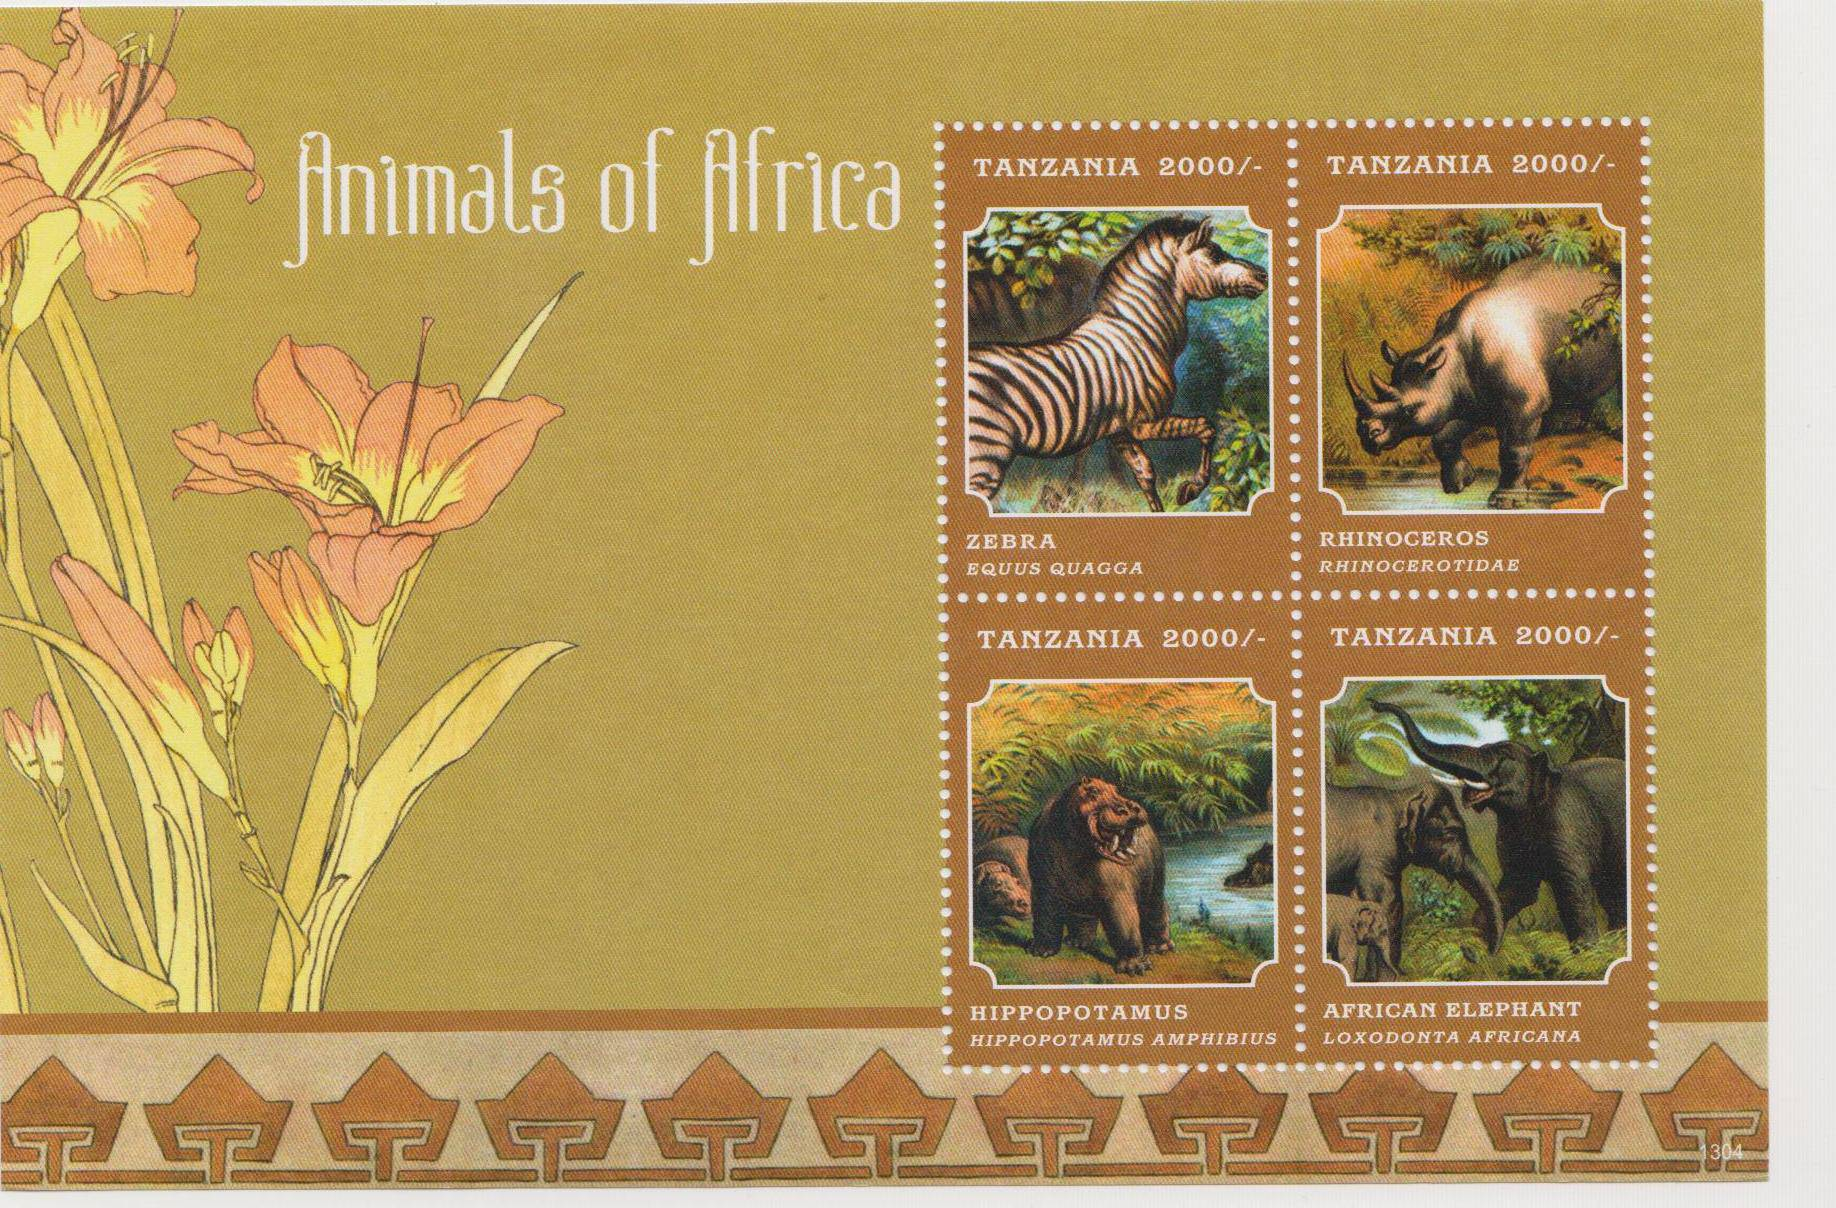 Africa 50 Different African Animals Stamps Other African Stamps Animal Kingdom